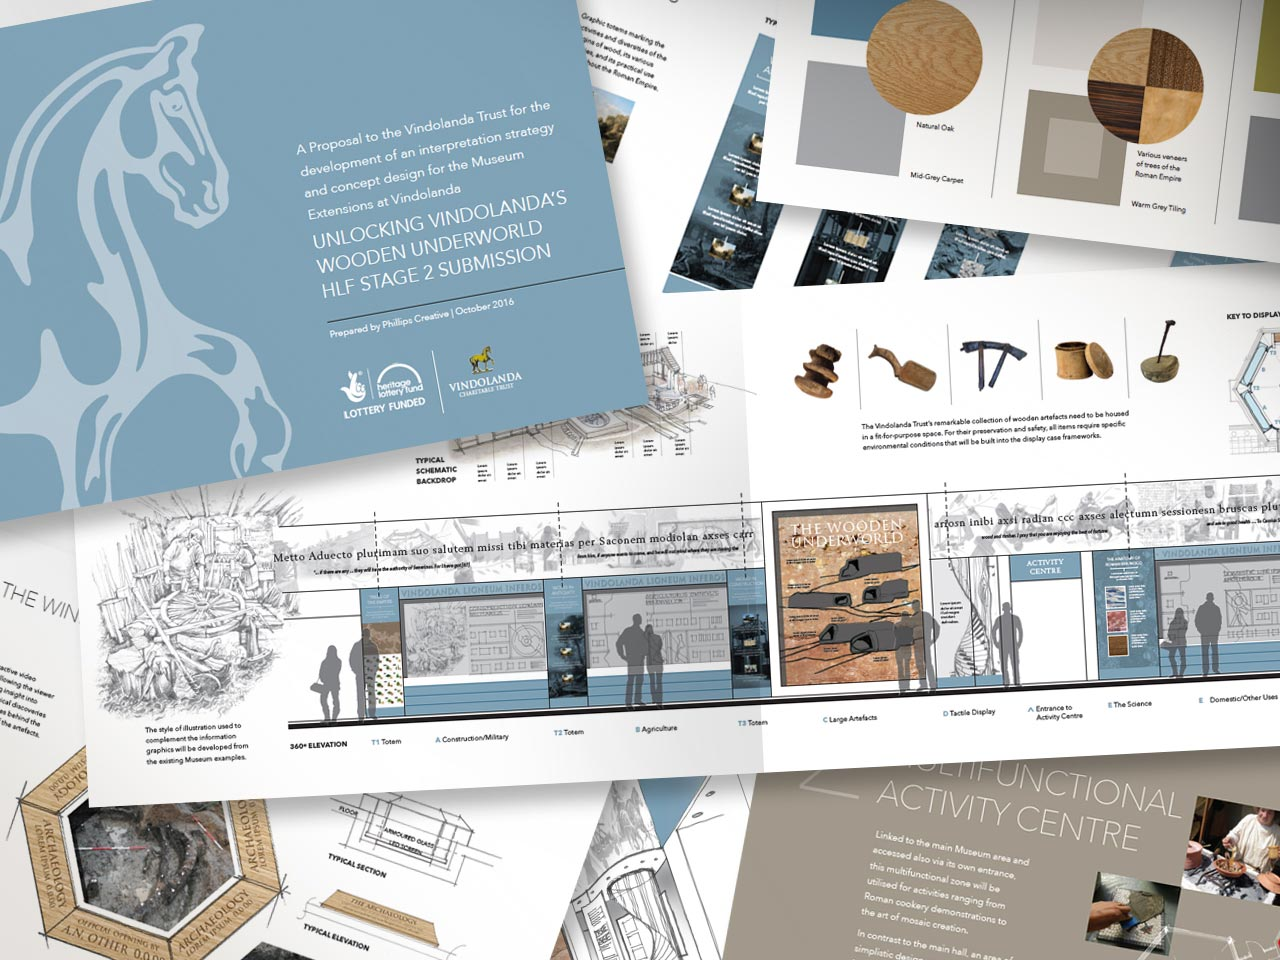 sample pages from the initial museum extension proposal